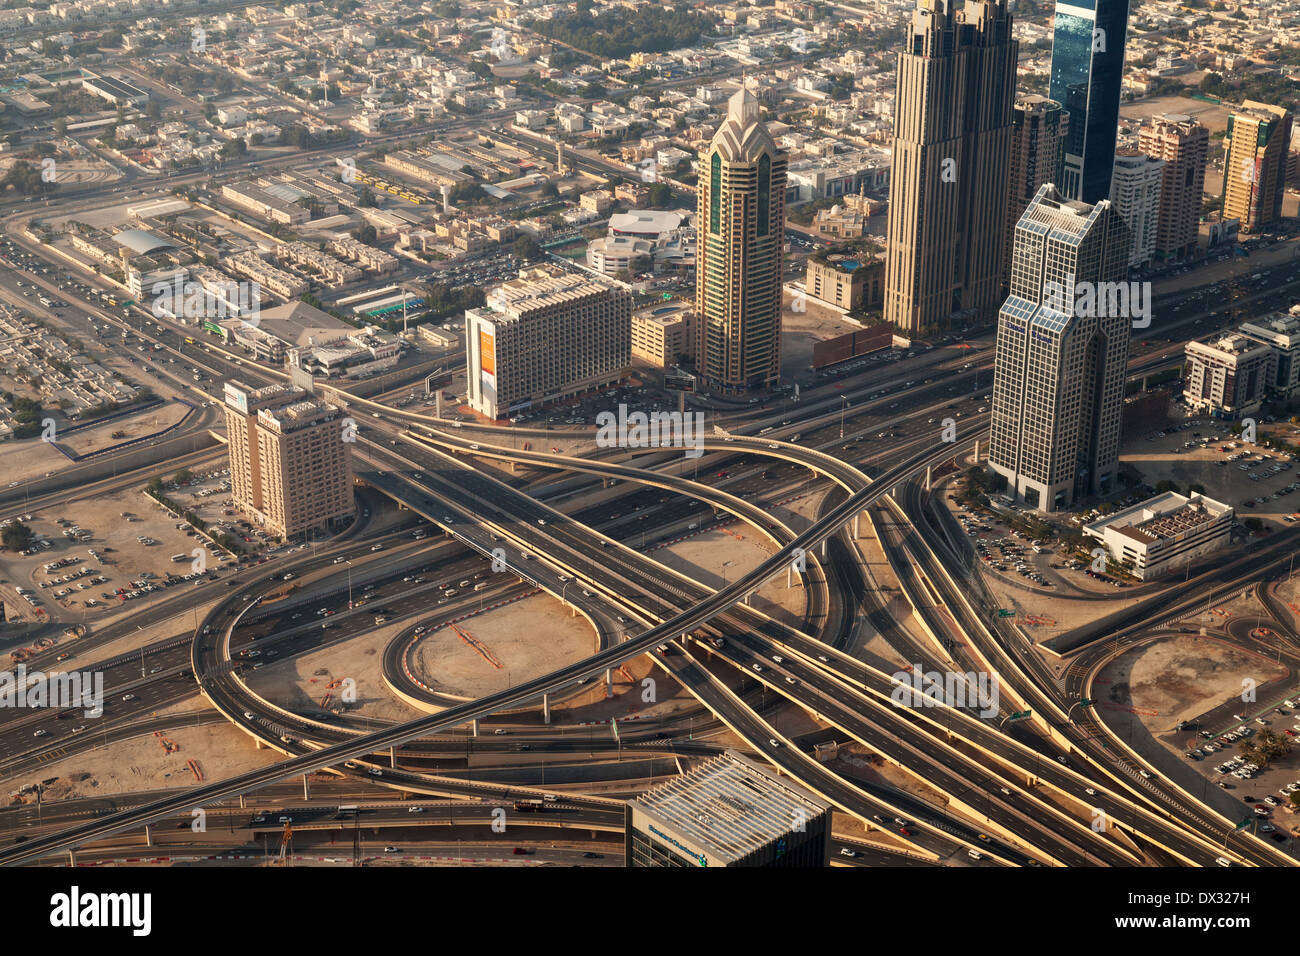 Dubai road transport system -  large interchange on the Sheik Zayed Road, Dubai city, seen from the top of the Burj Khalifa, UAE - Stock Image